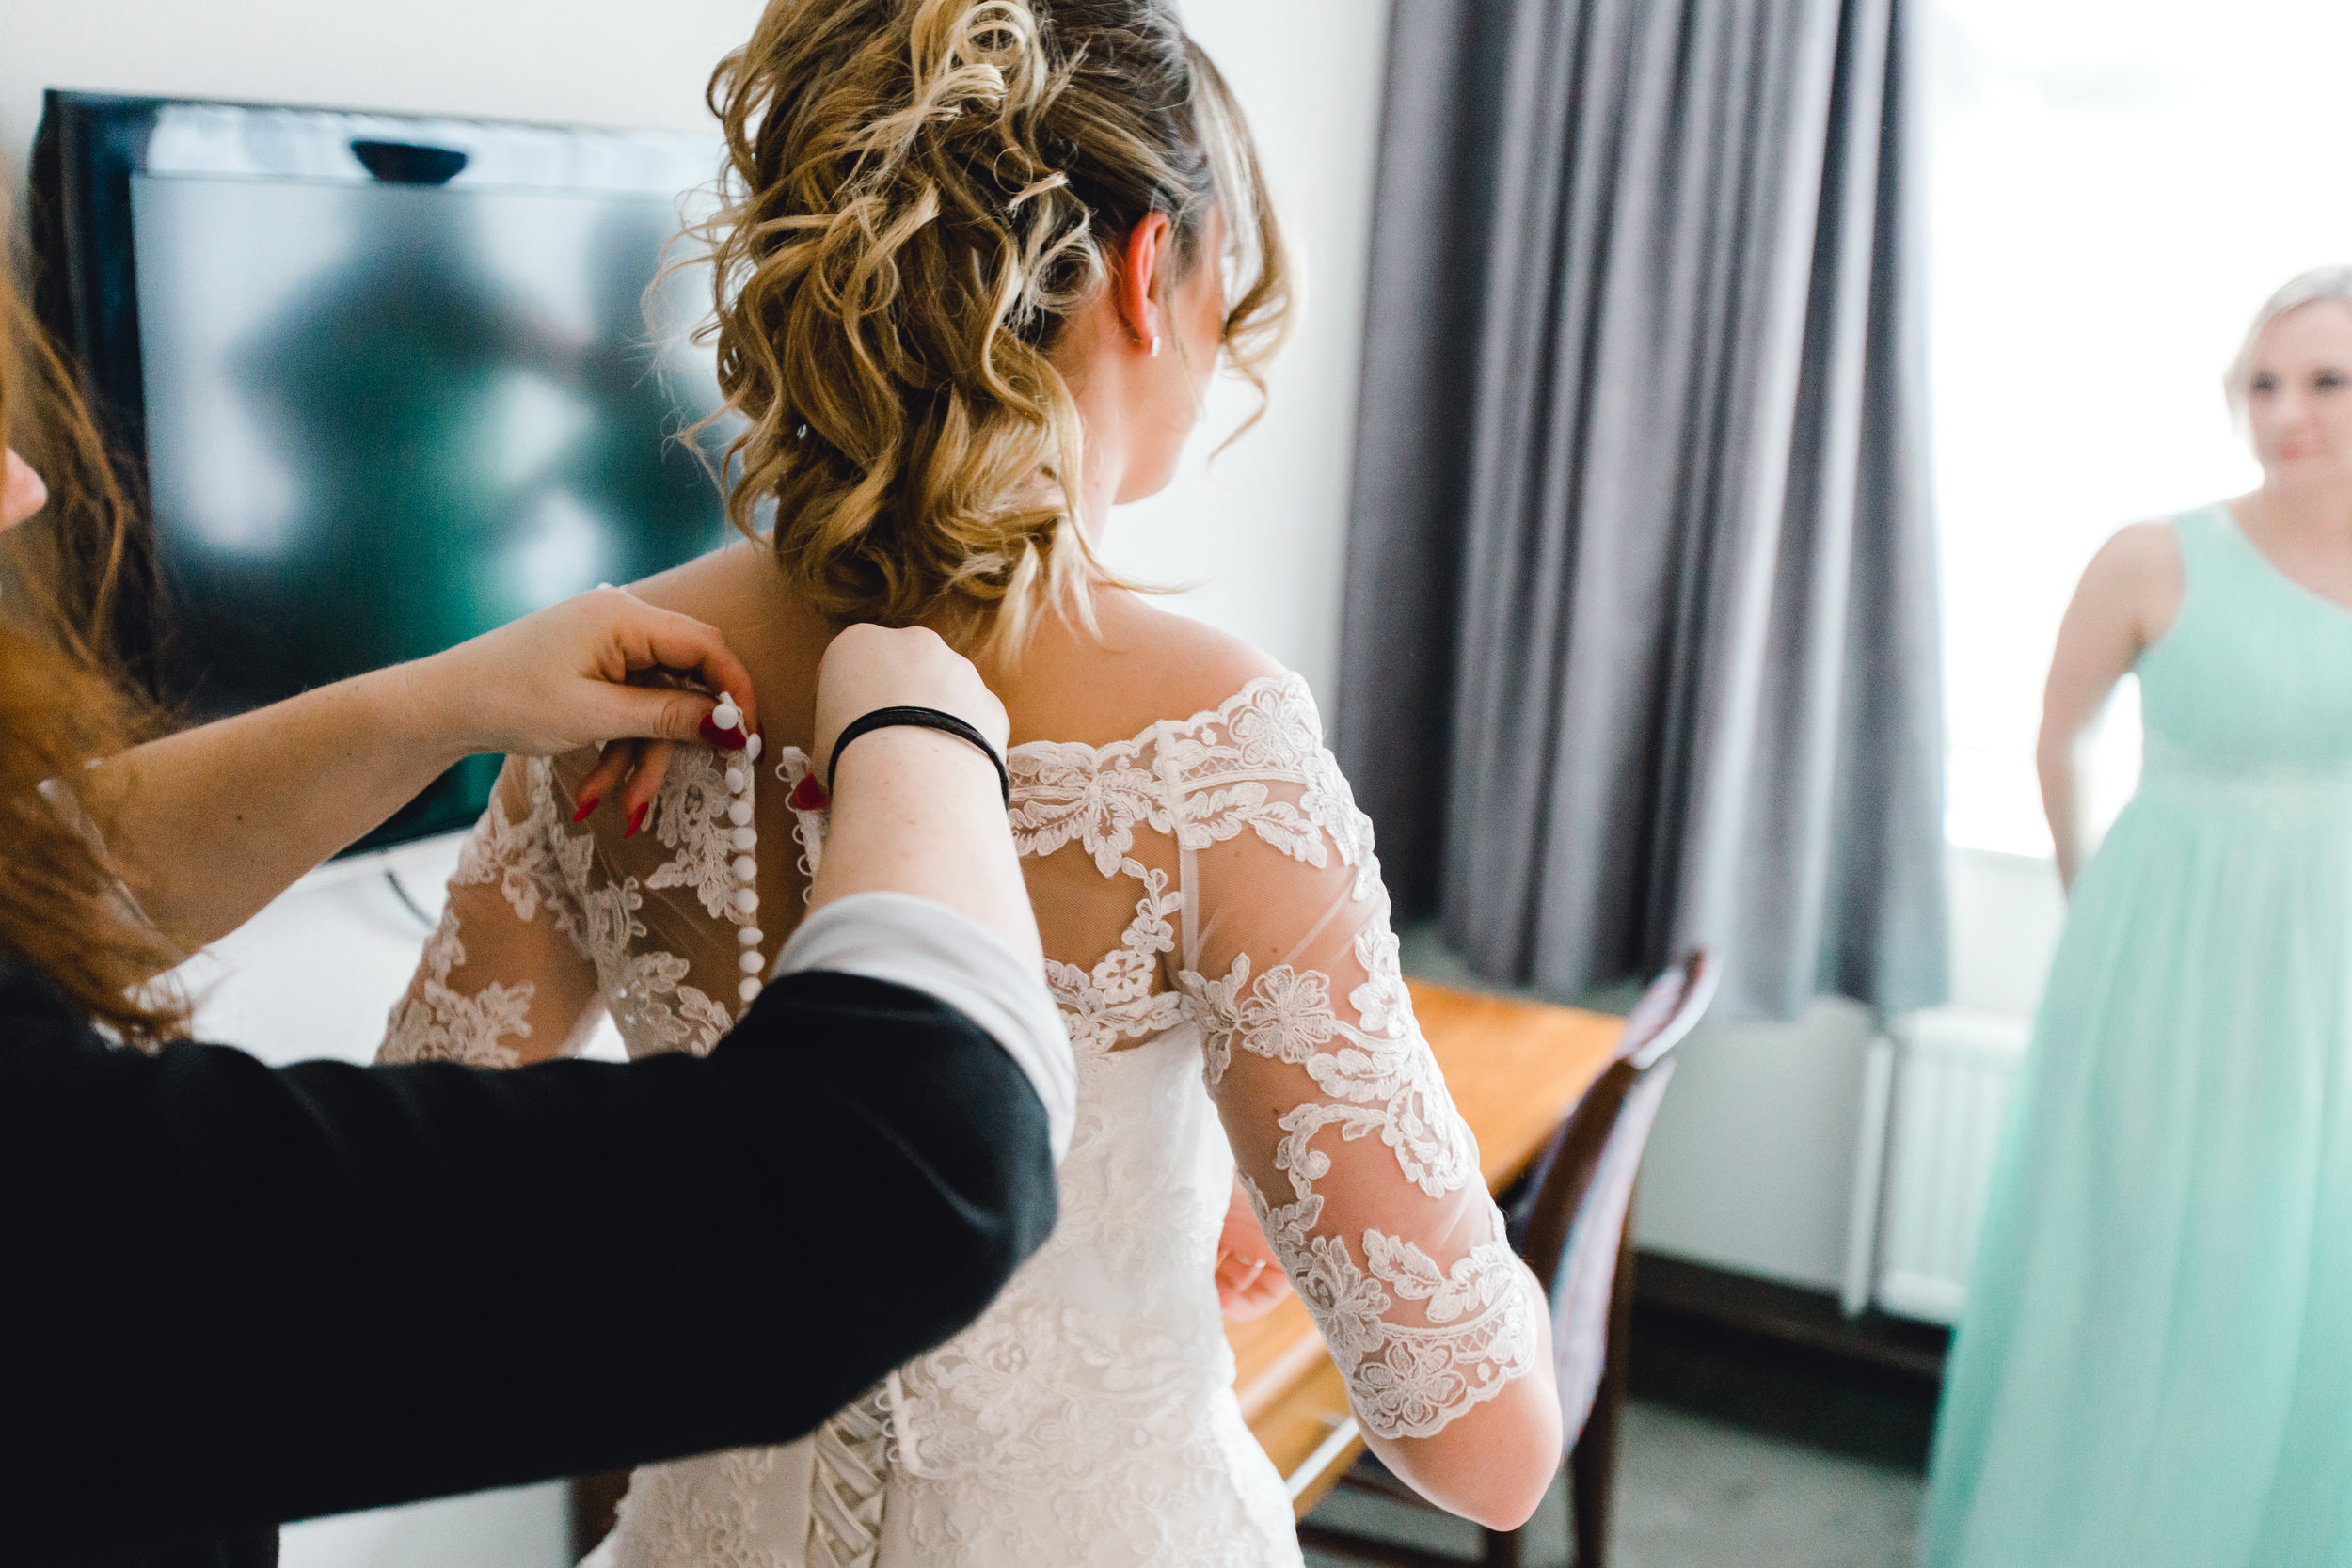 The final touch-ups before a wedding